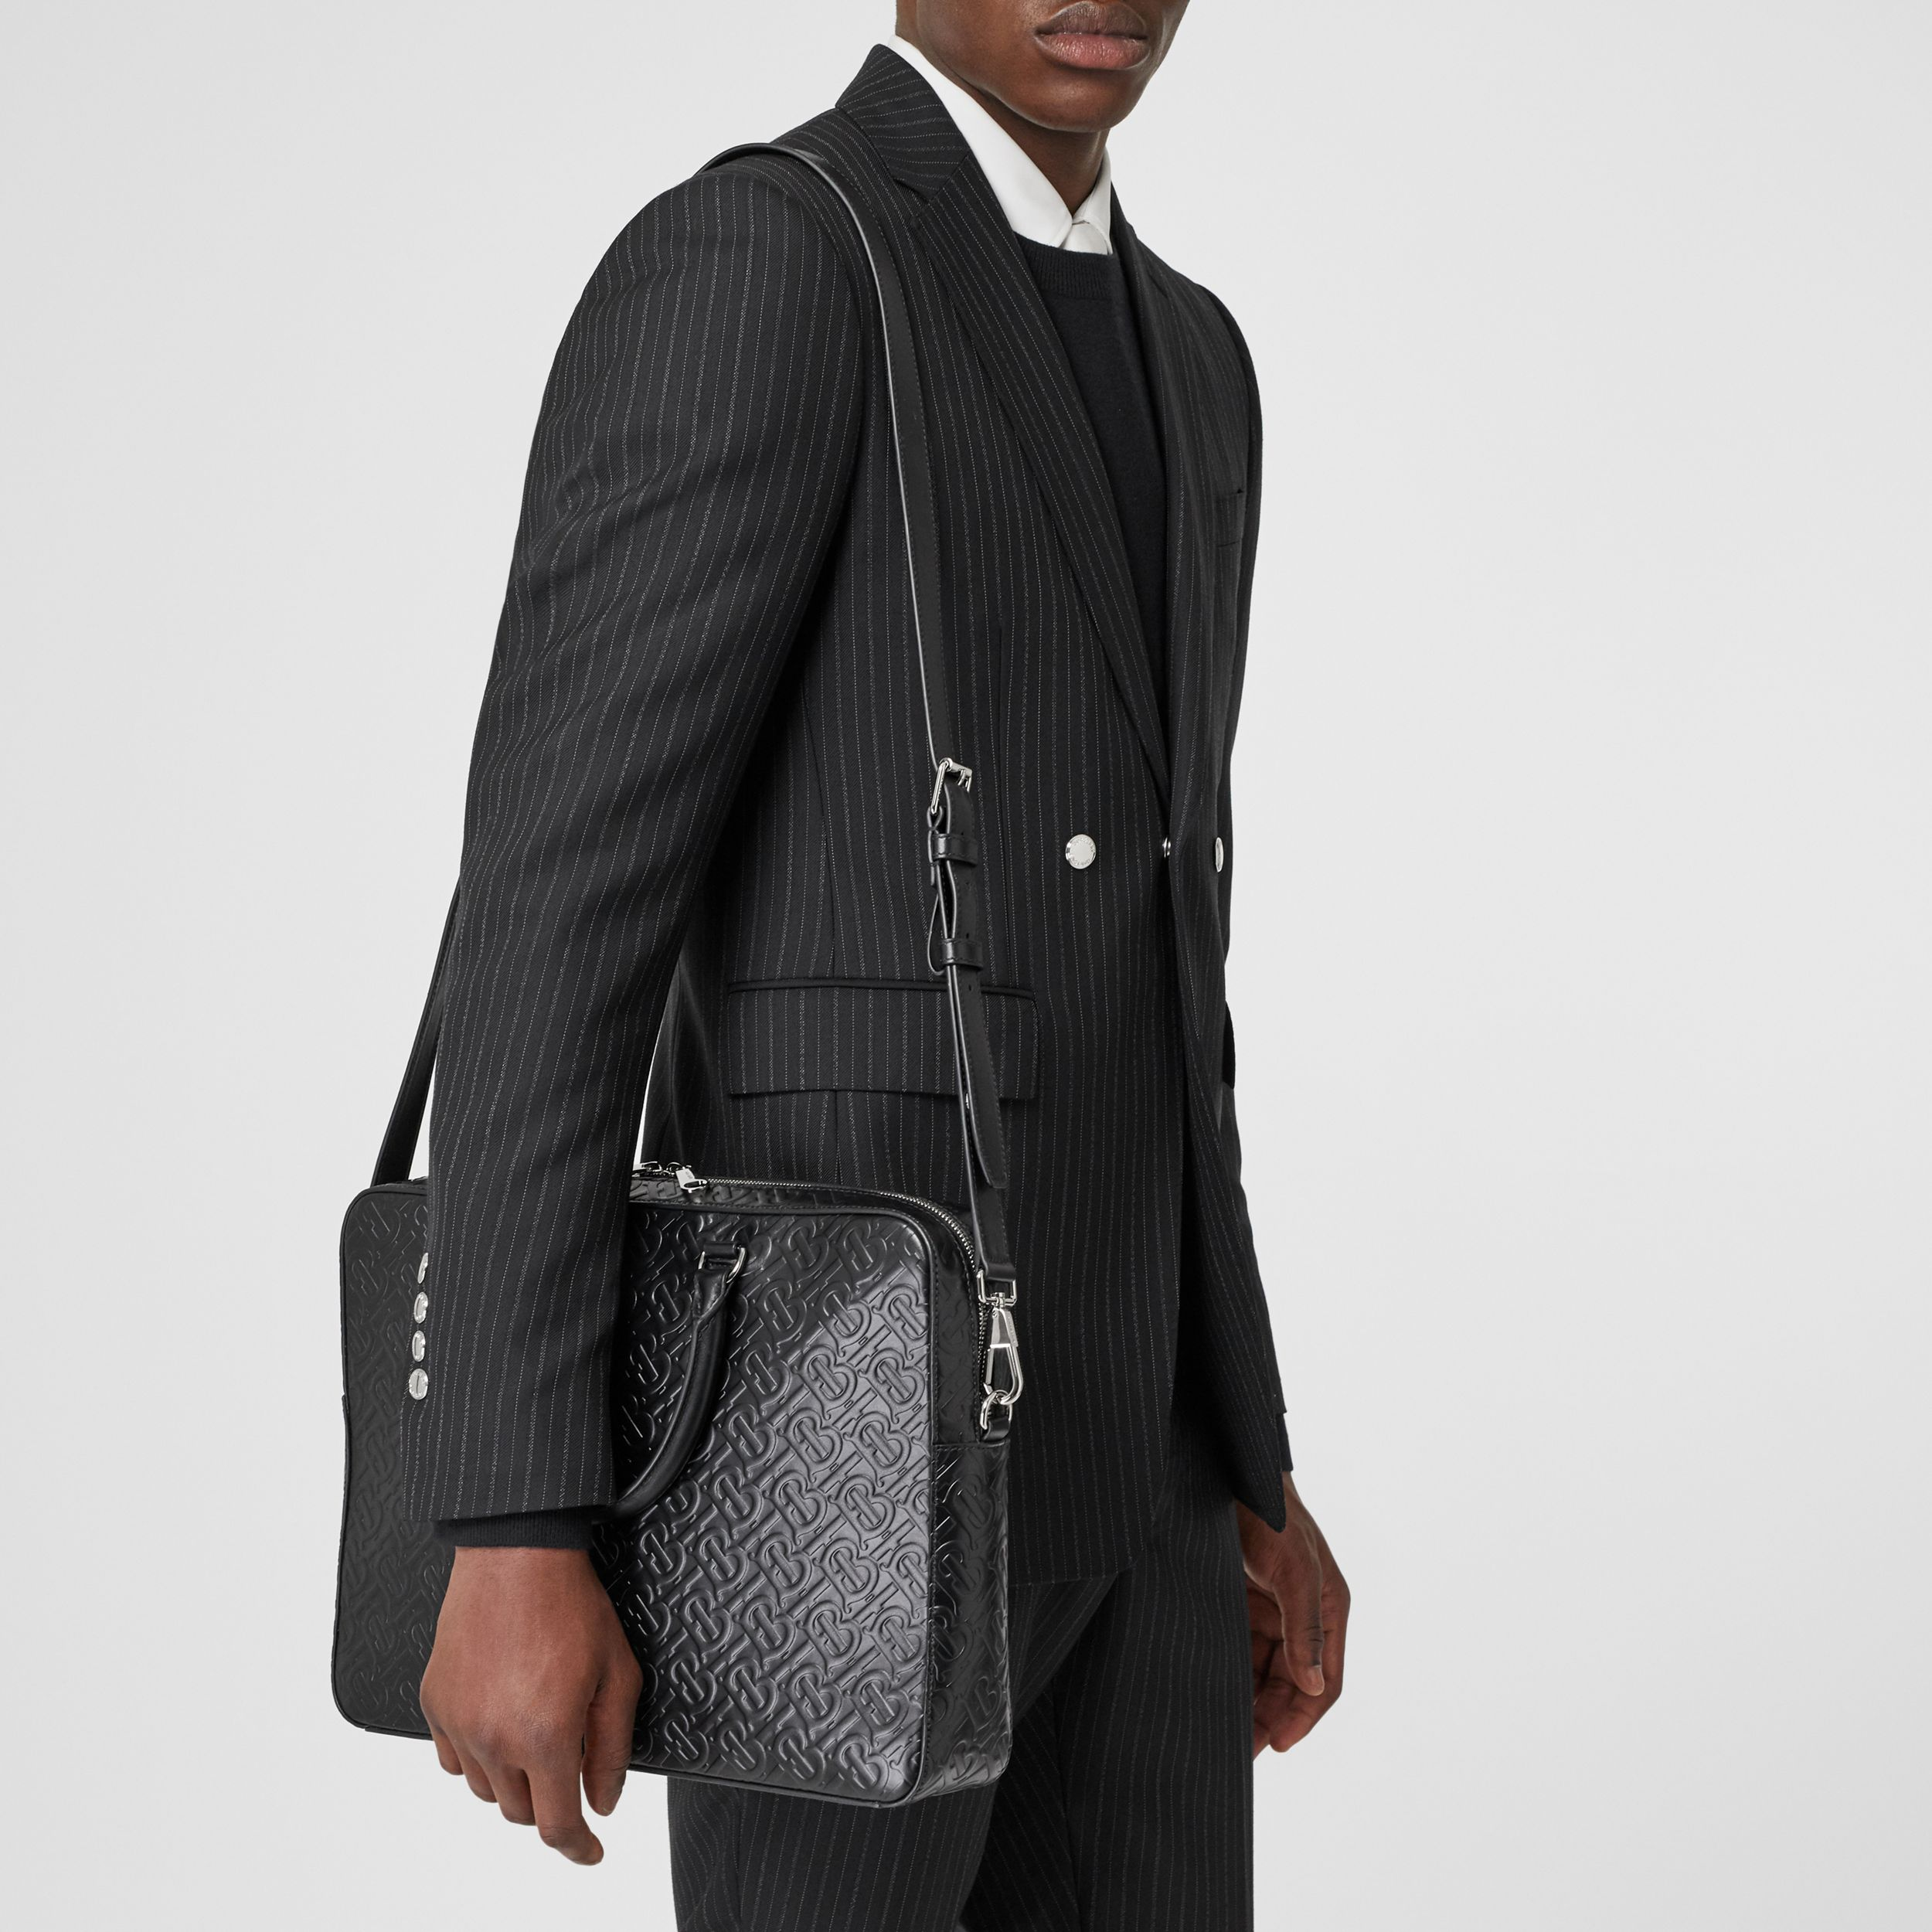 Monogram Leather Briefcase in Black - Men | Burberry - 3